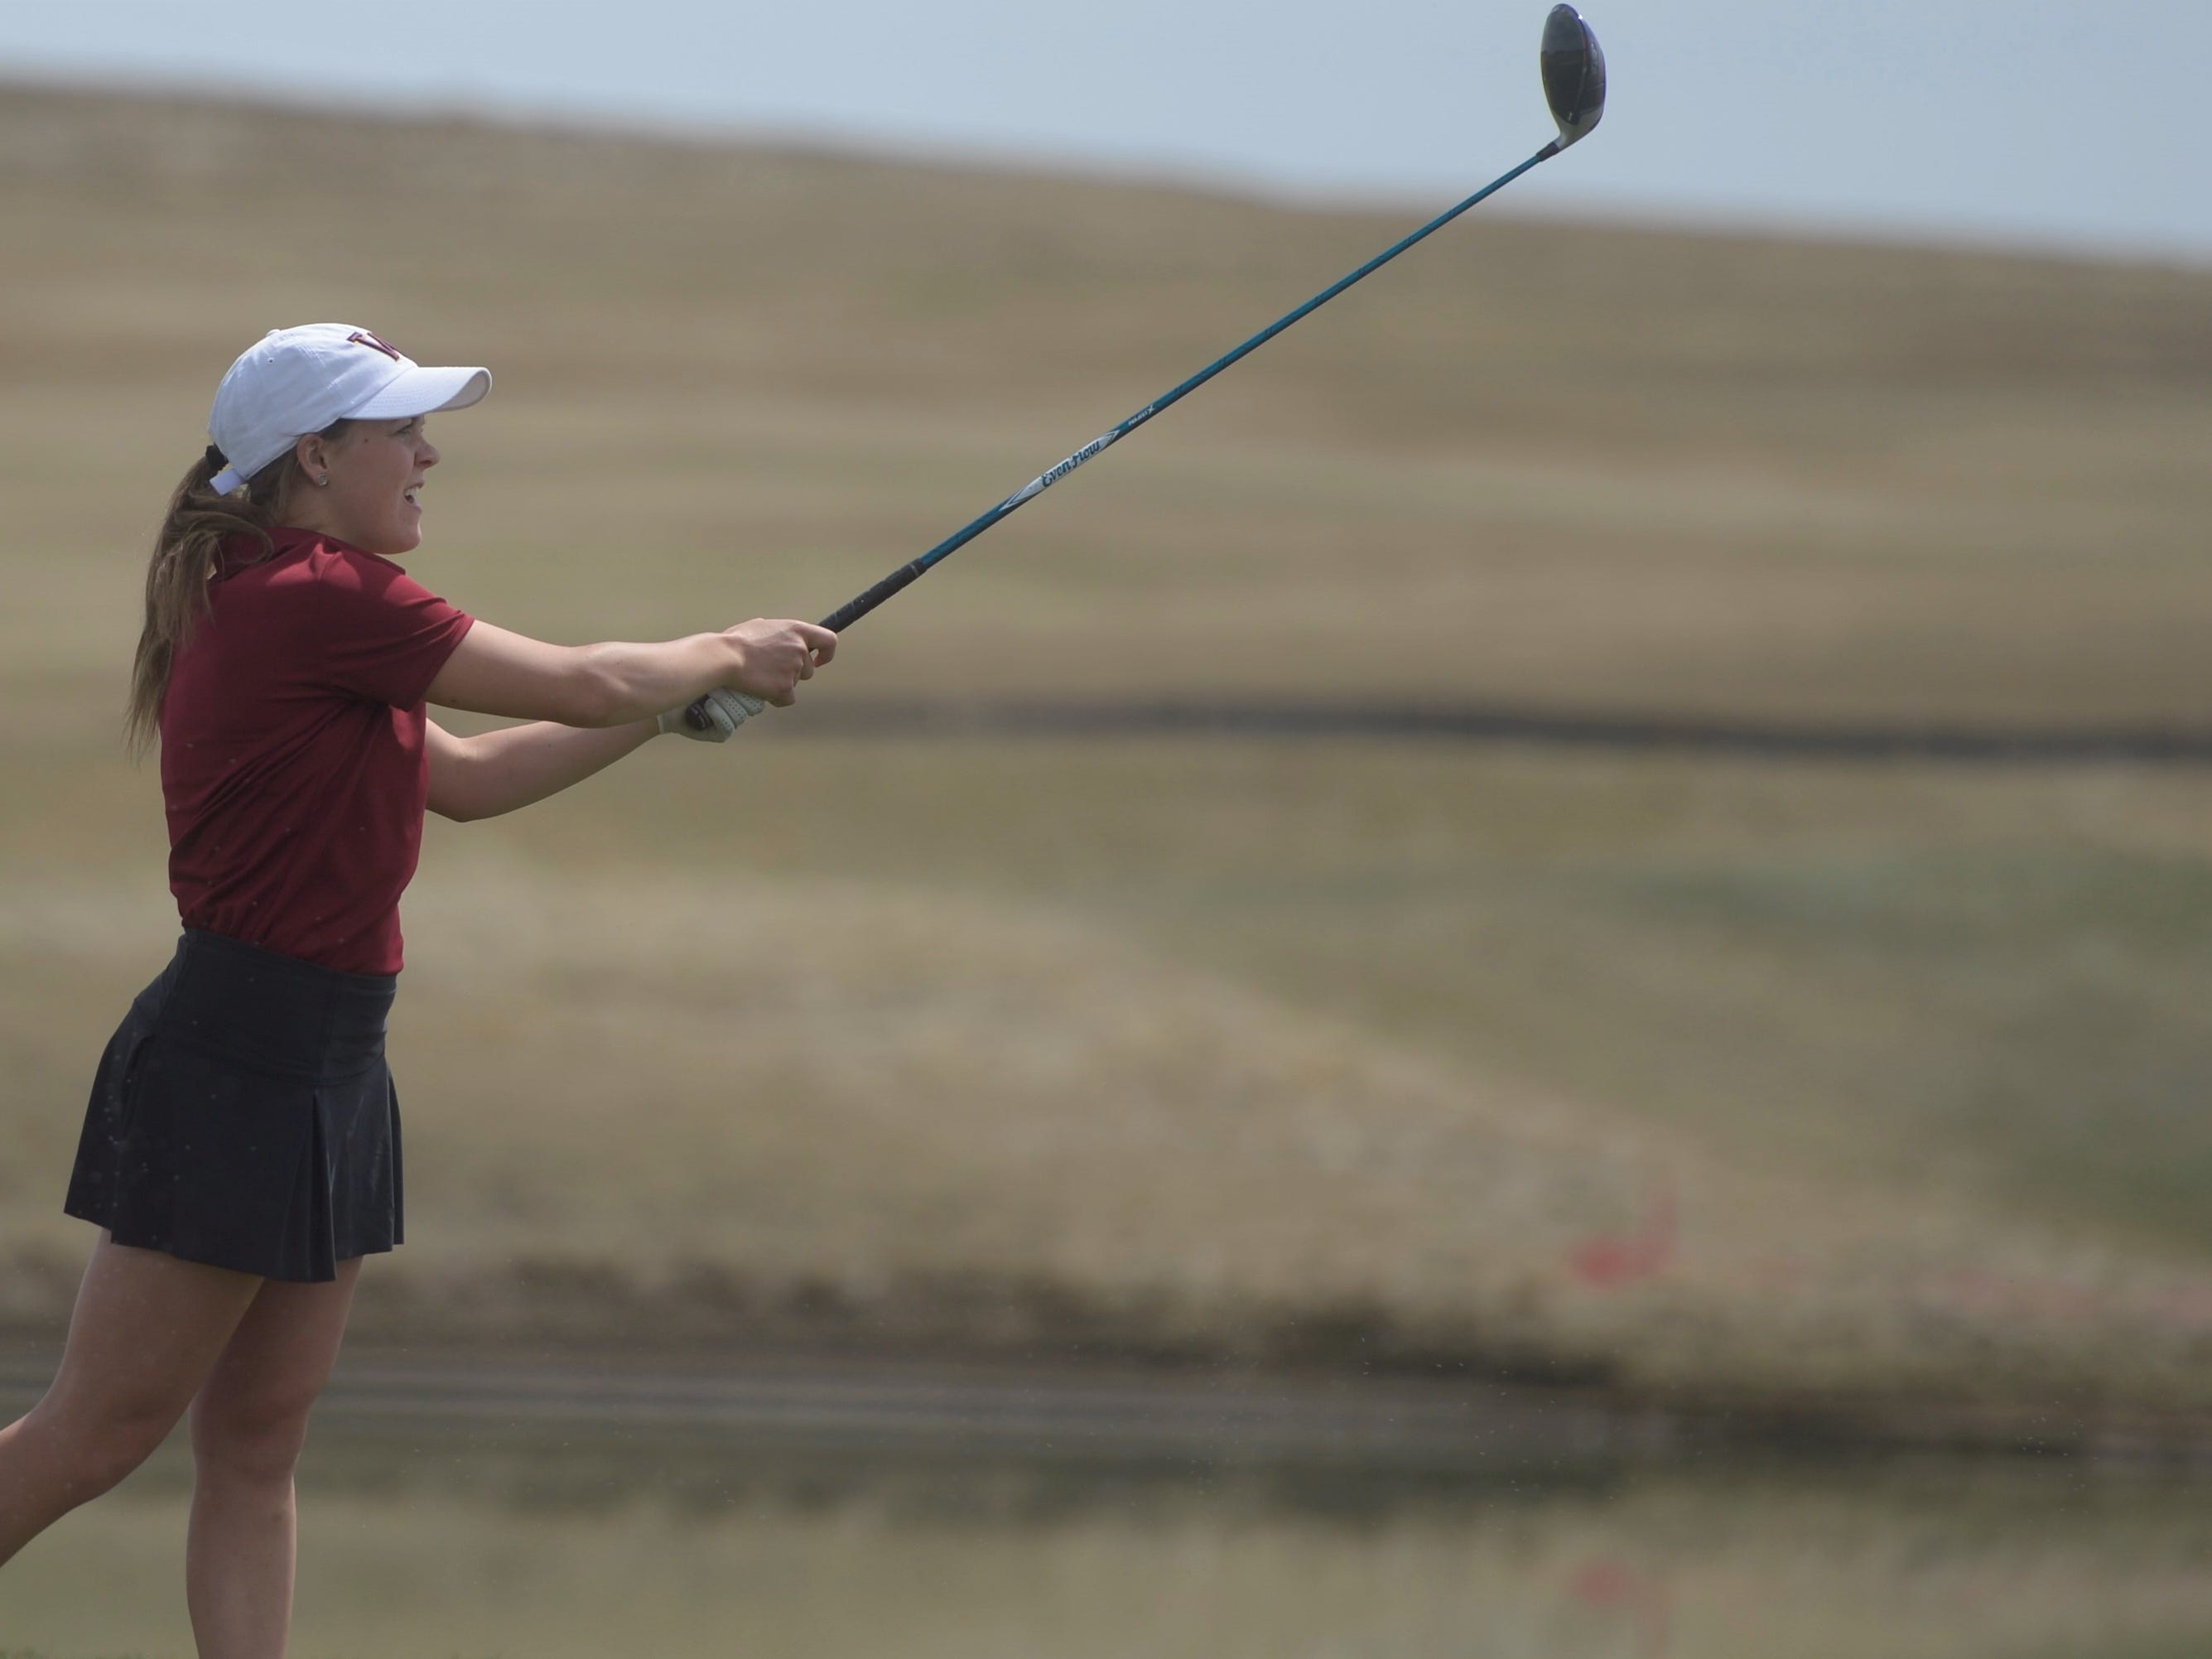 Windsor golfer Jessica Zapf watches a drive at the Tri-Valley League match at TPC Colorado in Berthoud on Monday, April 15. Windsor won the event. It's the first Tournament Players Club course in the state.